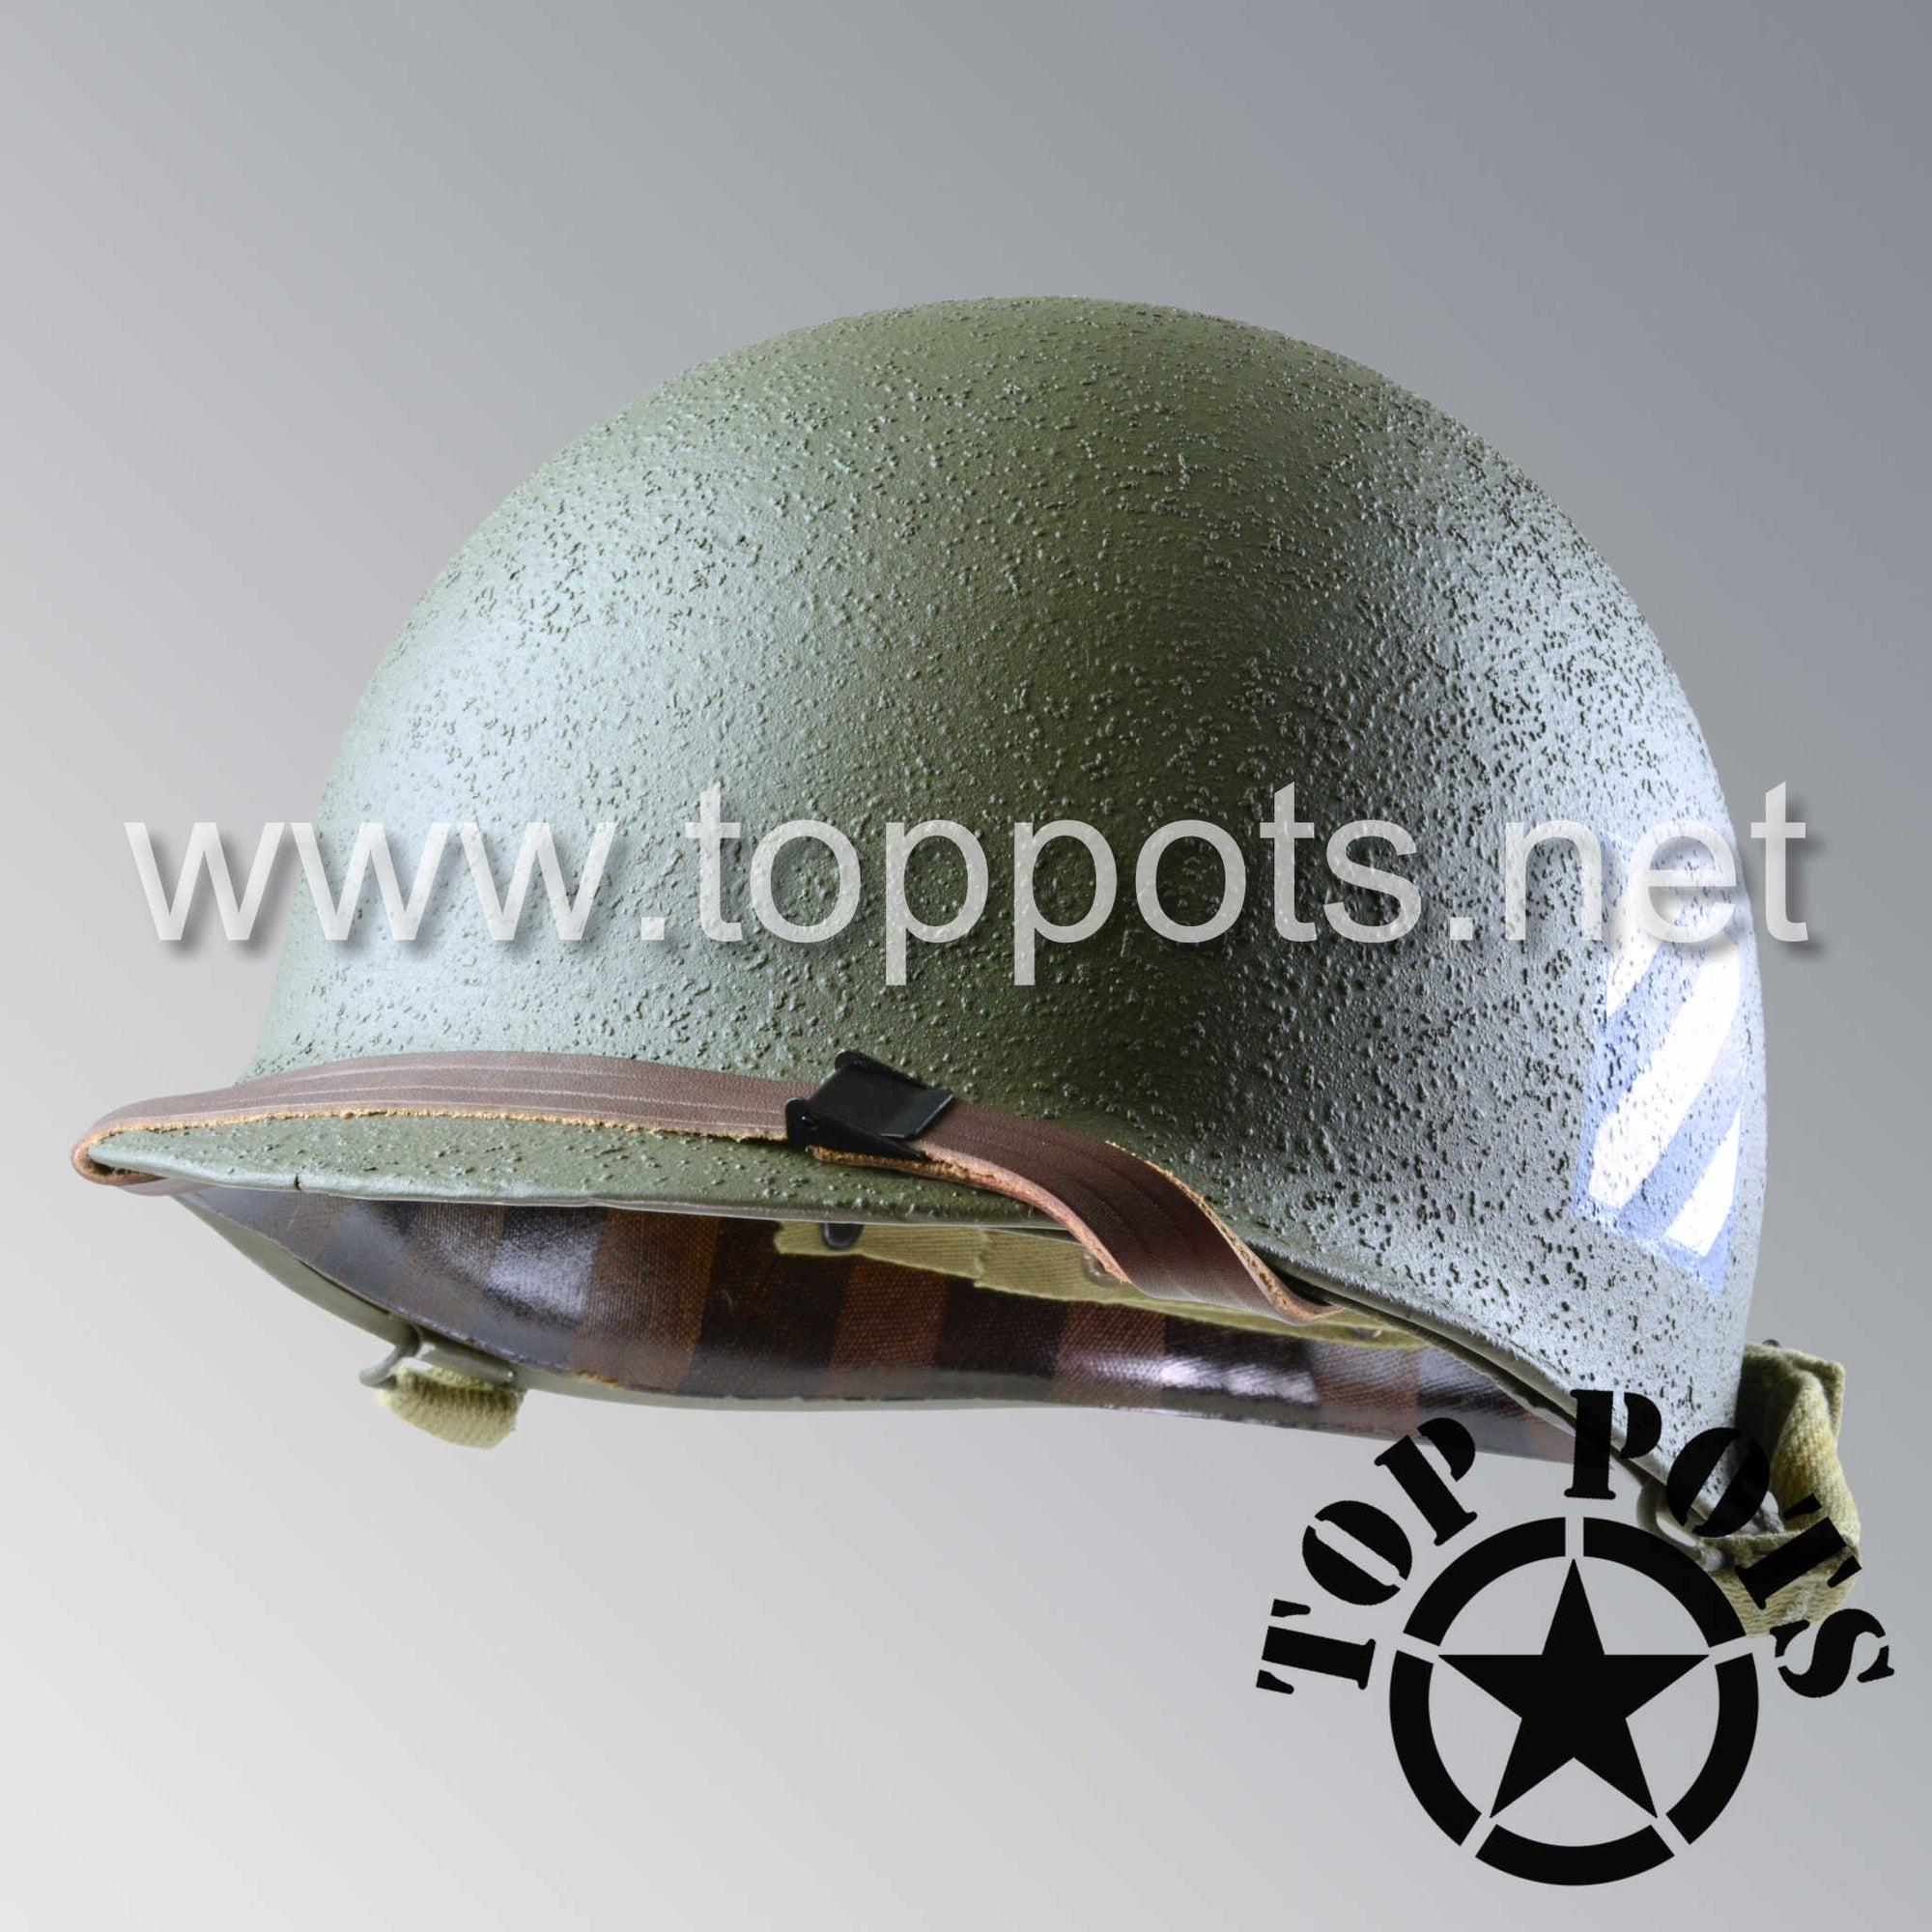 Image 1 of WWII US Army Restored Original M1 Infantry Helmet Swivel Bale Shell and Liner with 3rd Infantry Division Emblem - Schlueter Shell